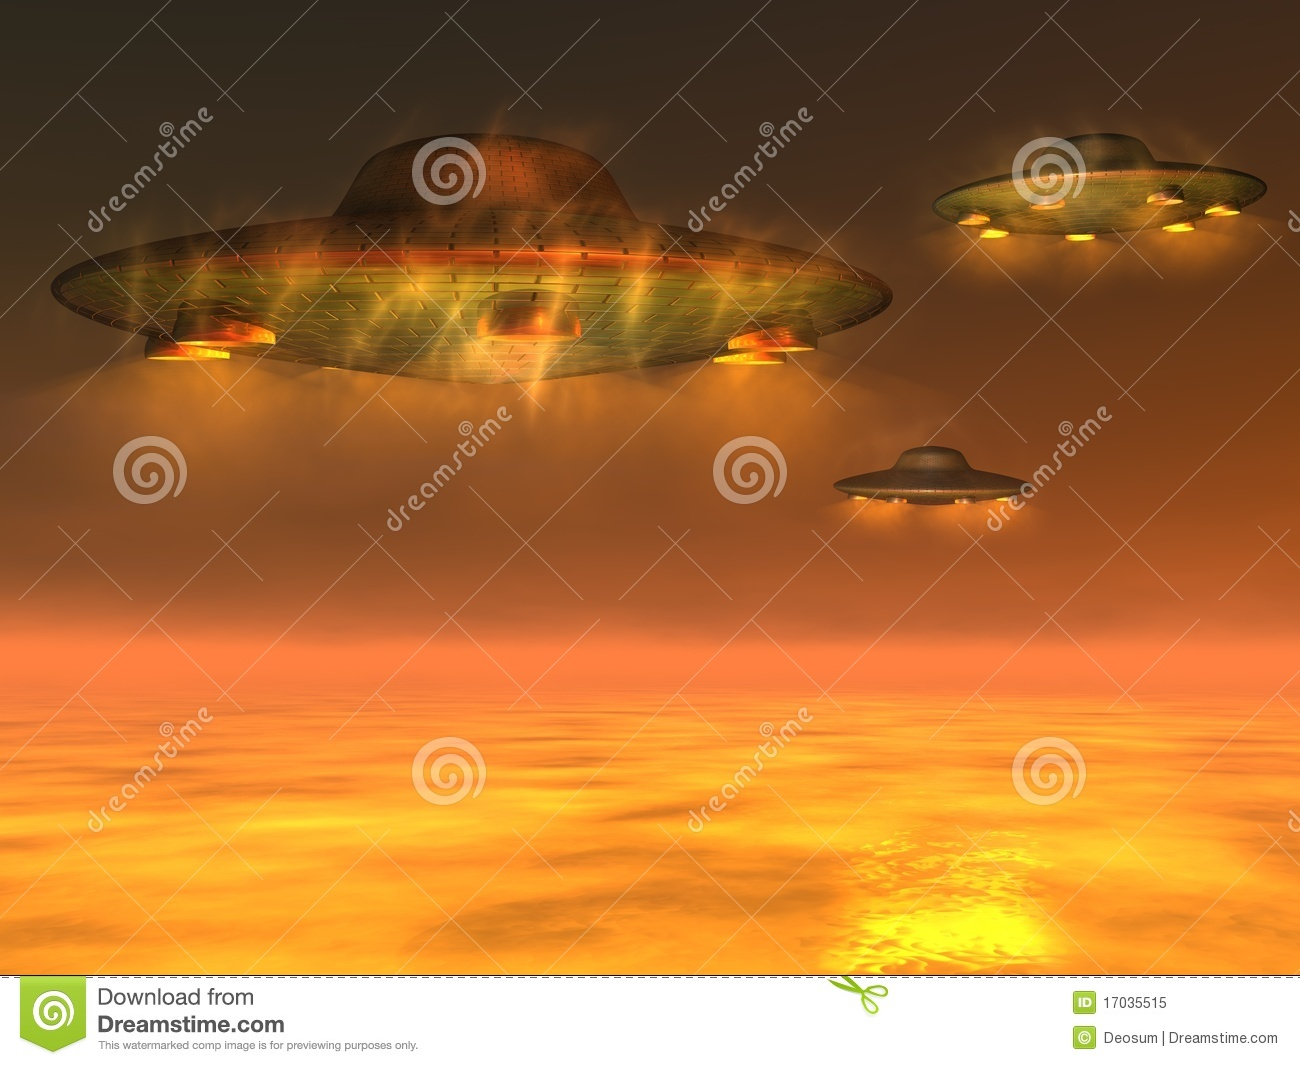 unidentified flying object essay The existence of ufos essay  (unidentified flying object) 2562 words   11 pages the oxford english dictionary defines a ufo as an unidentified flying object a .